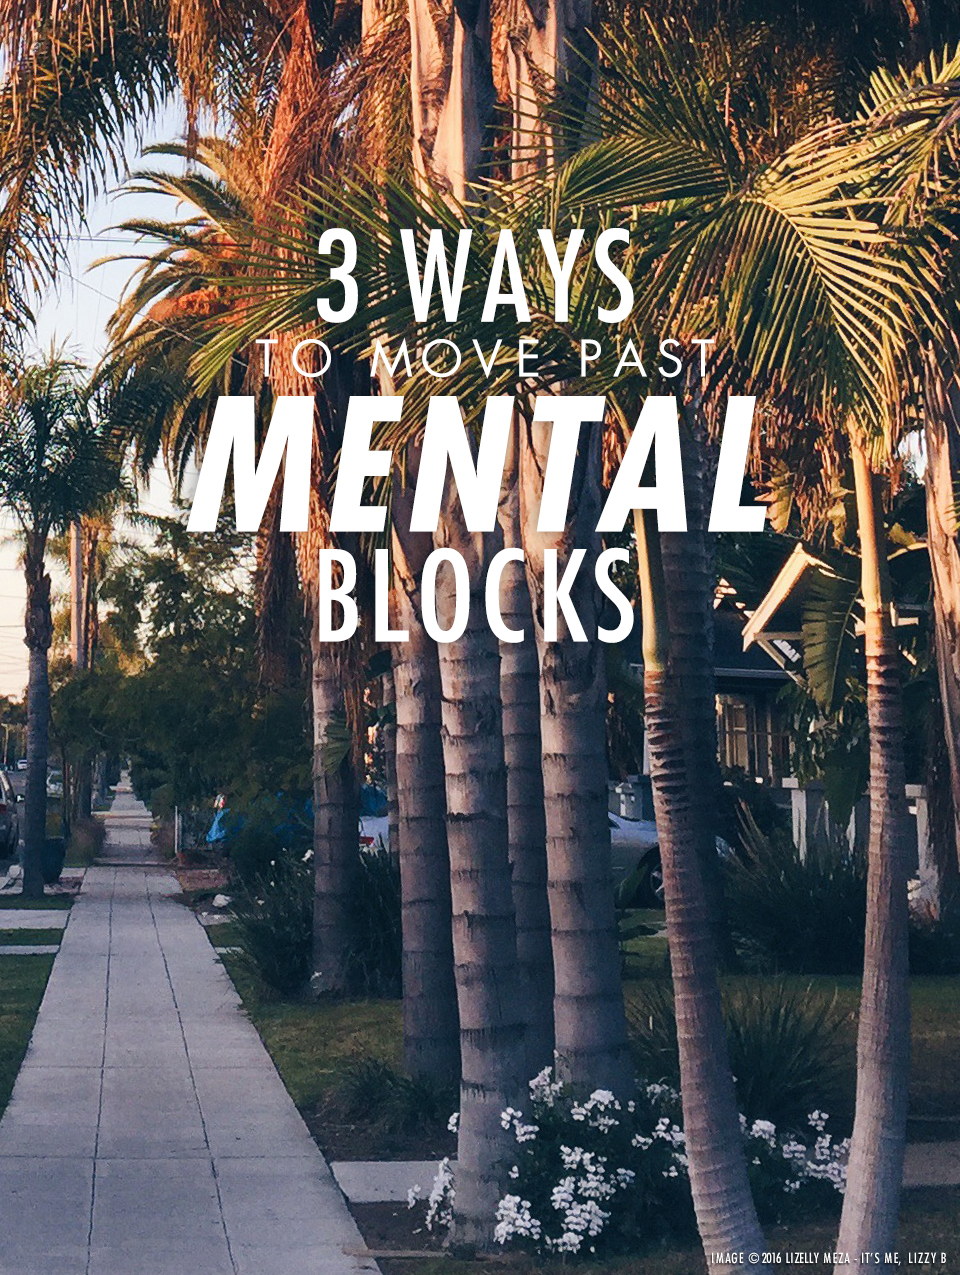 3 Tips to Move Past Mental Blocks // It's Me, Lizzy B - Musings on Life, Business, & The Pursuit of Everyday Joy // Personal blog of Lizelly Meza from Lizzy B Loves